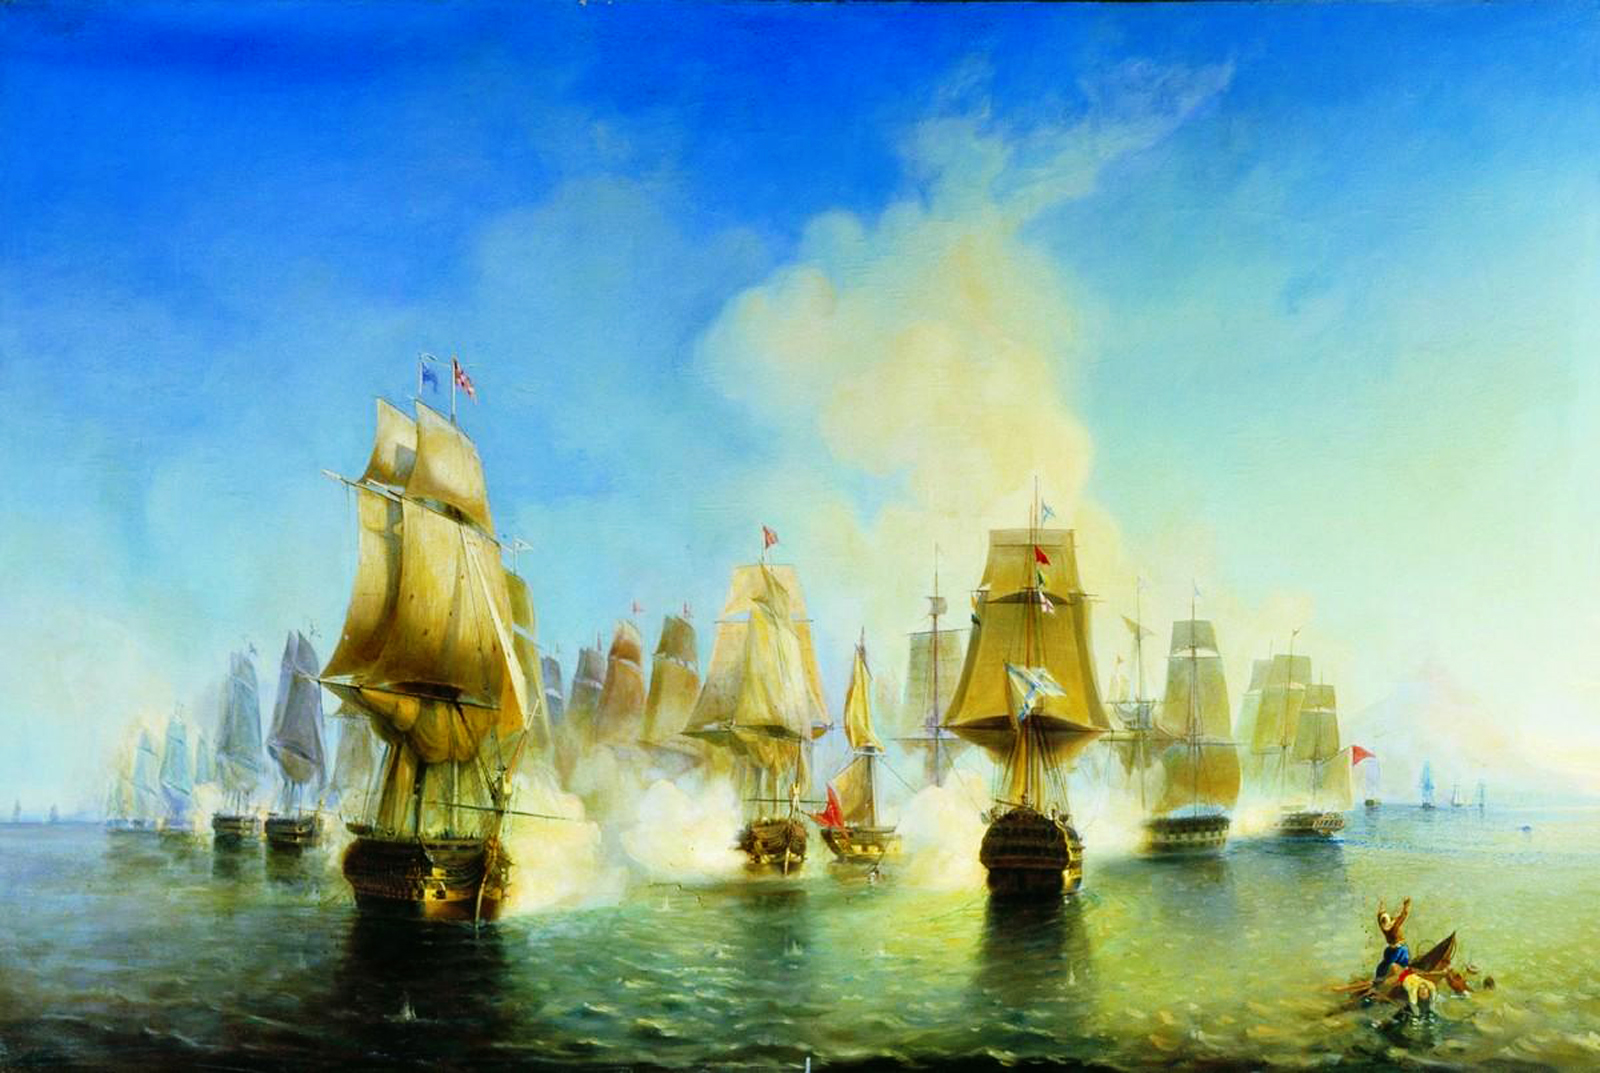 http://3.bp.blogspot.com/-G-f1s23zXB0/Tt6sNRQu9mI/AAAAAAAAEyE/QGZTAfzIYJ0/s1600/Pirate_Ships_Navy_Oil_Painting_HD_Wallpaper.jpg